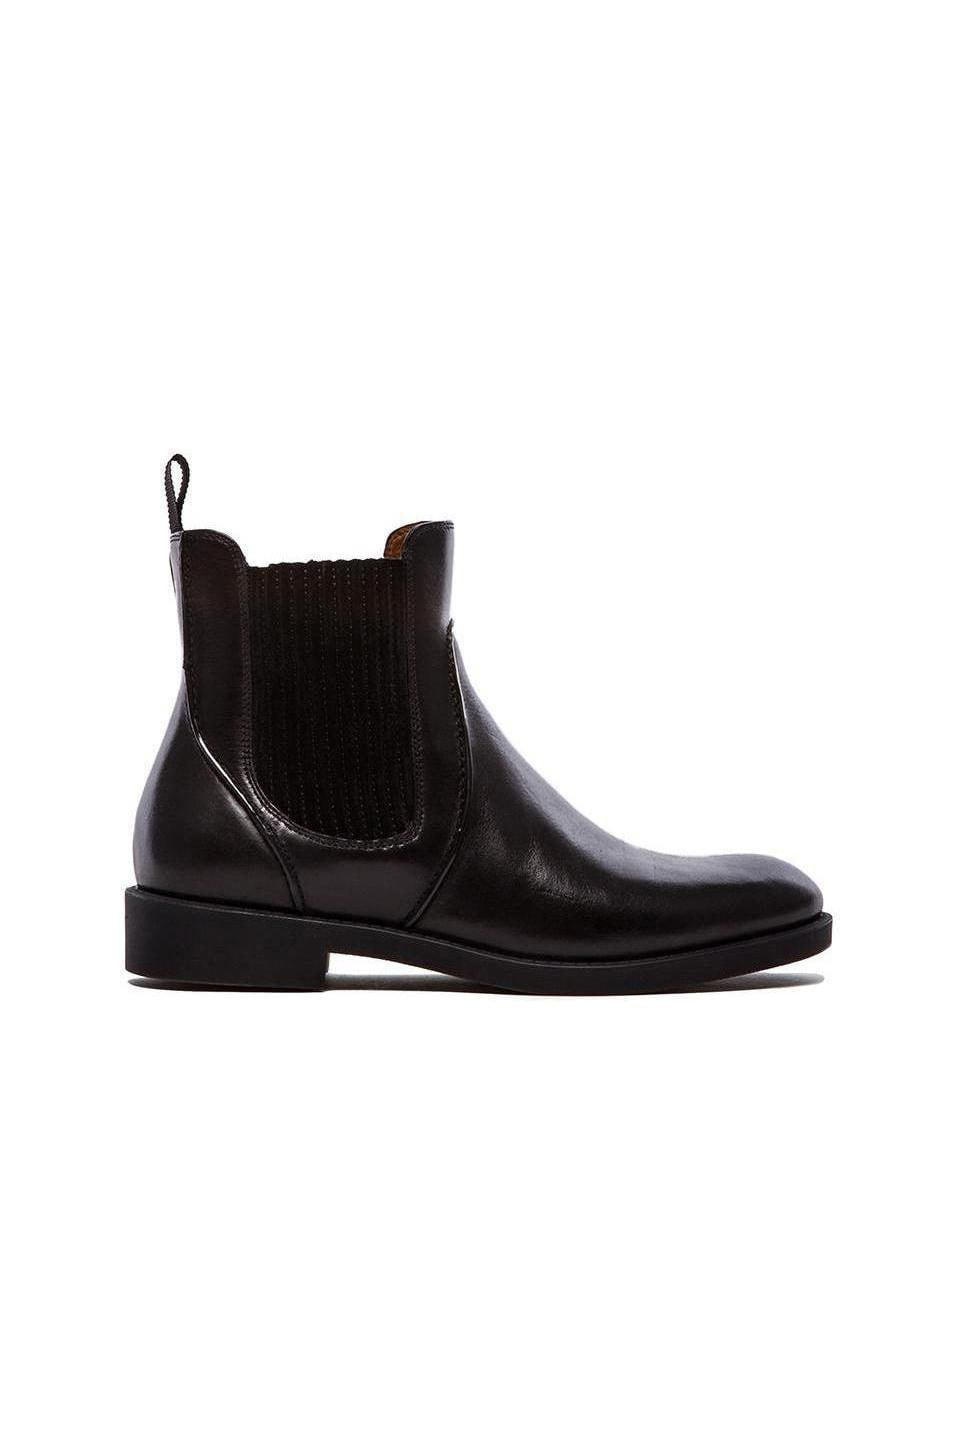 Marc by Marc Jacobs Street Smart Flat Ankle Booties in Black